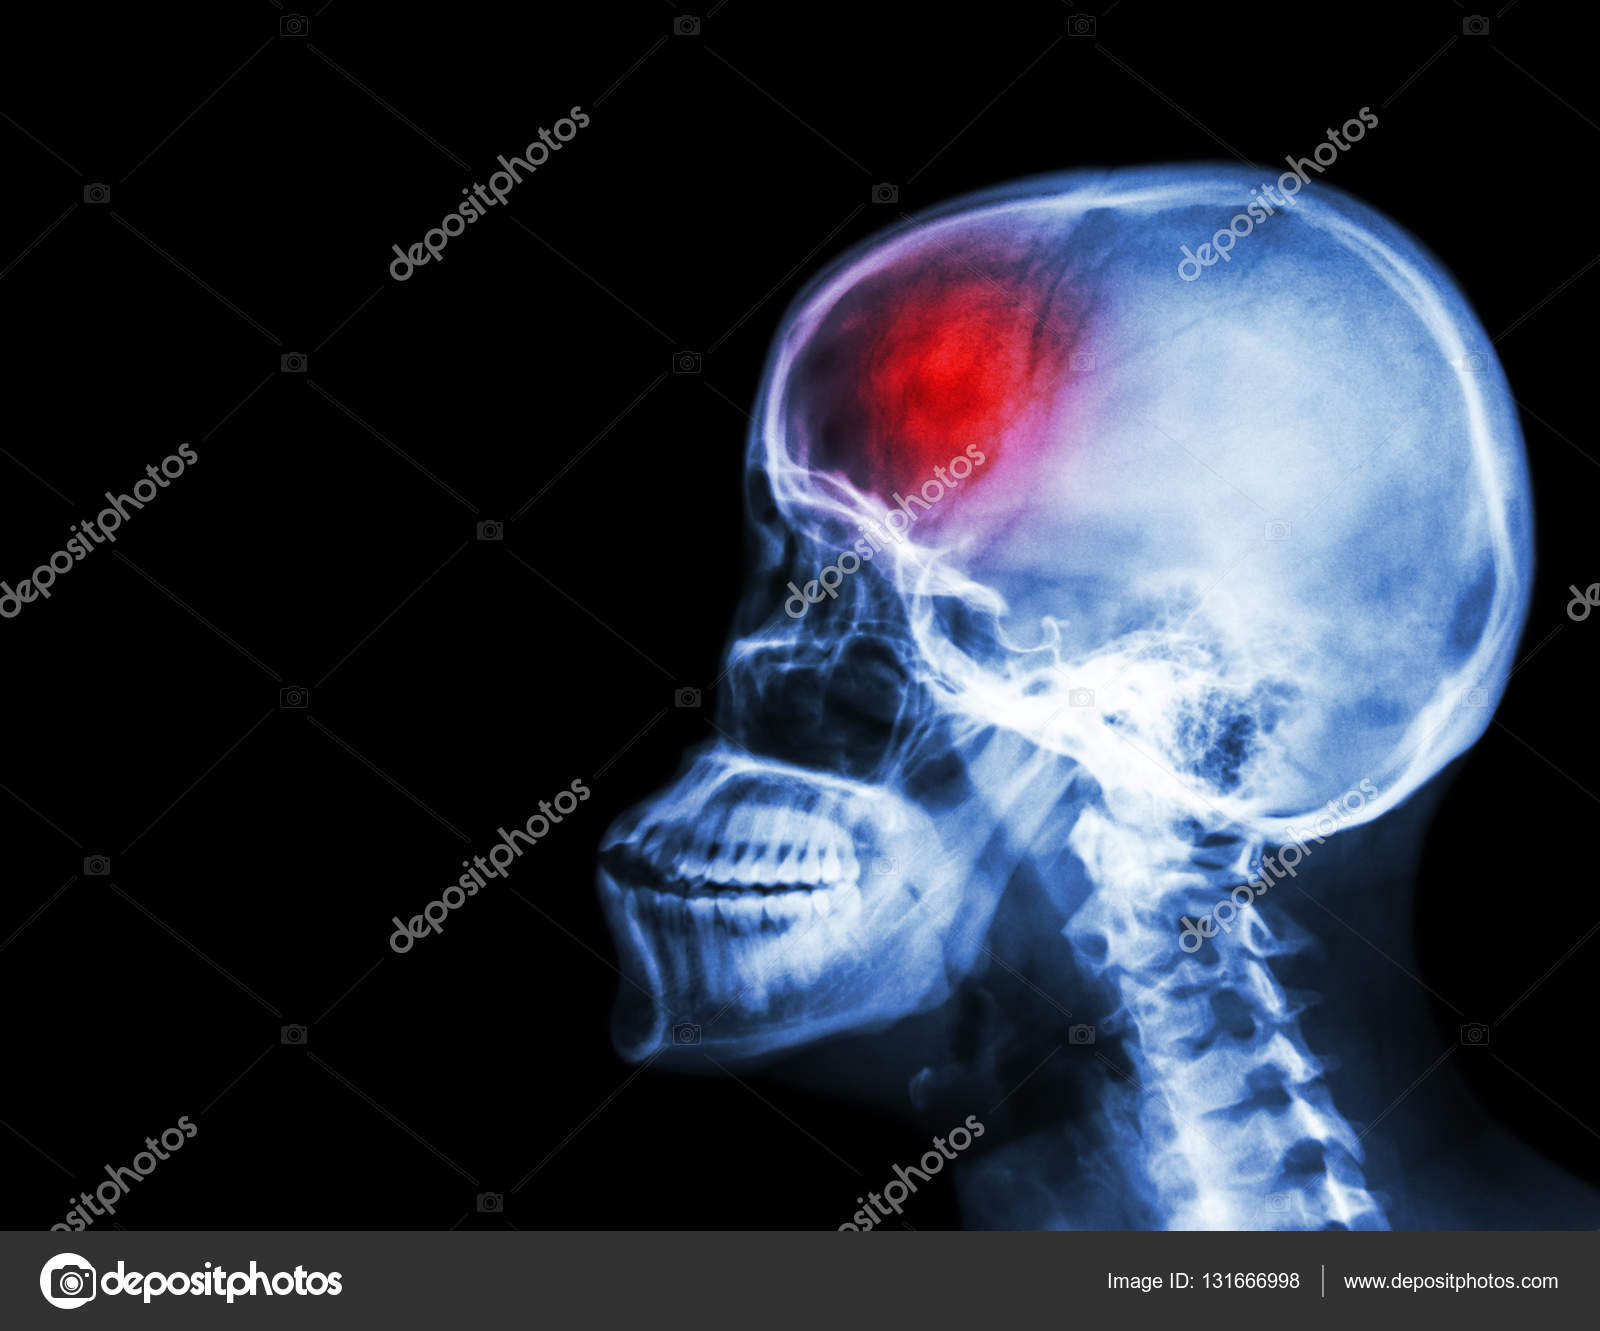 stroke film x ray skull and cervical spine lateral view and stroke cerebrovascular accident blank area at left side photo by stockdevil_666